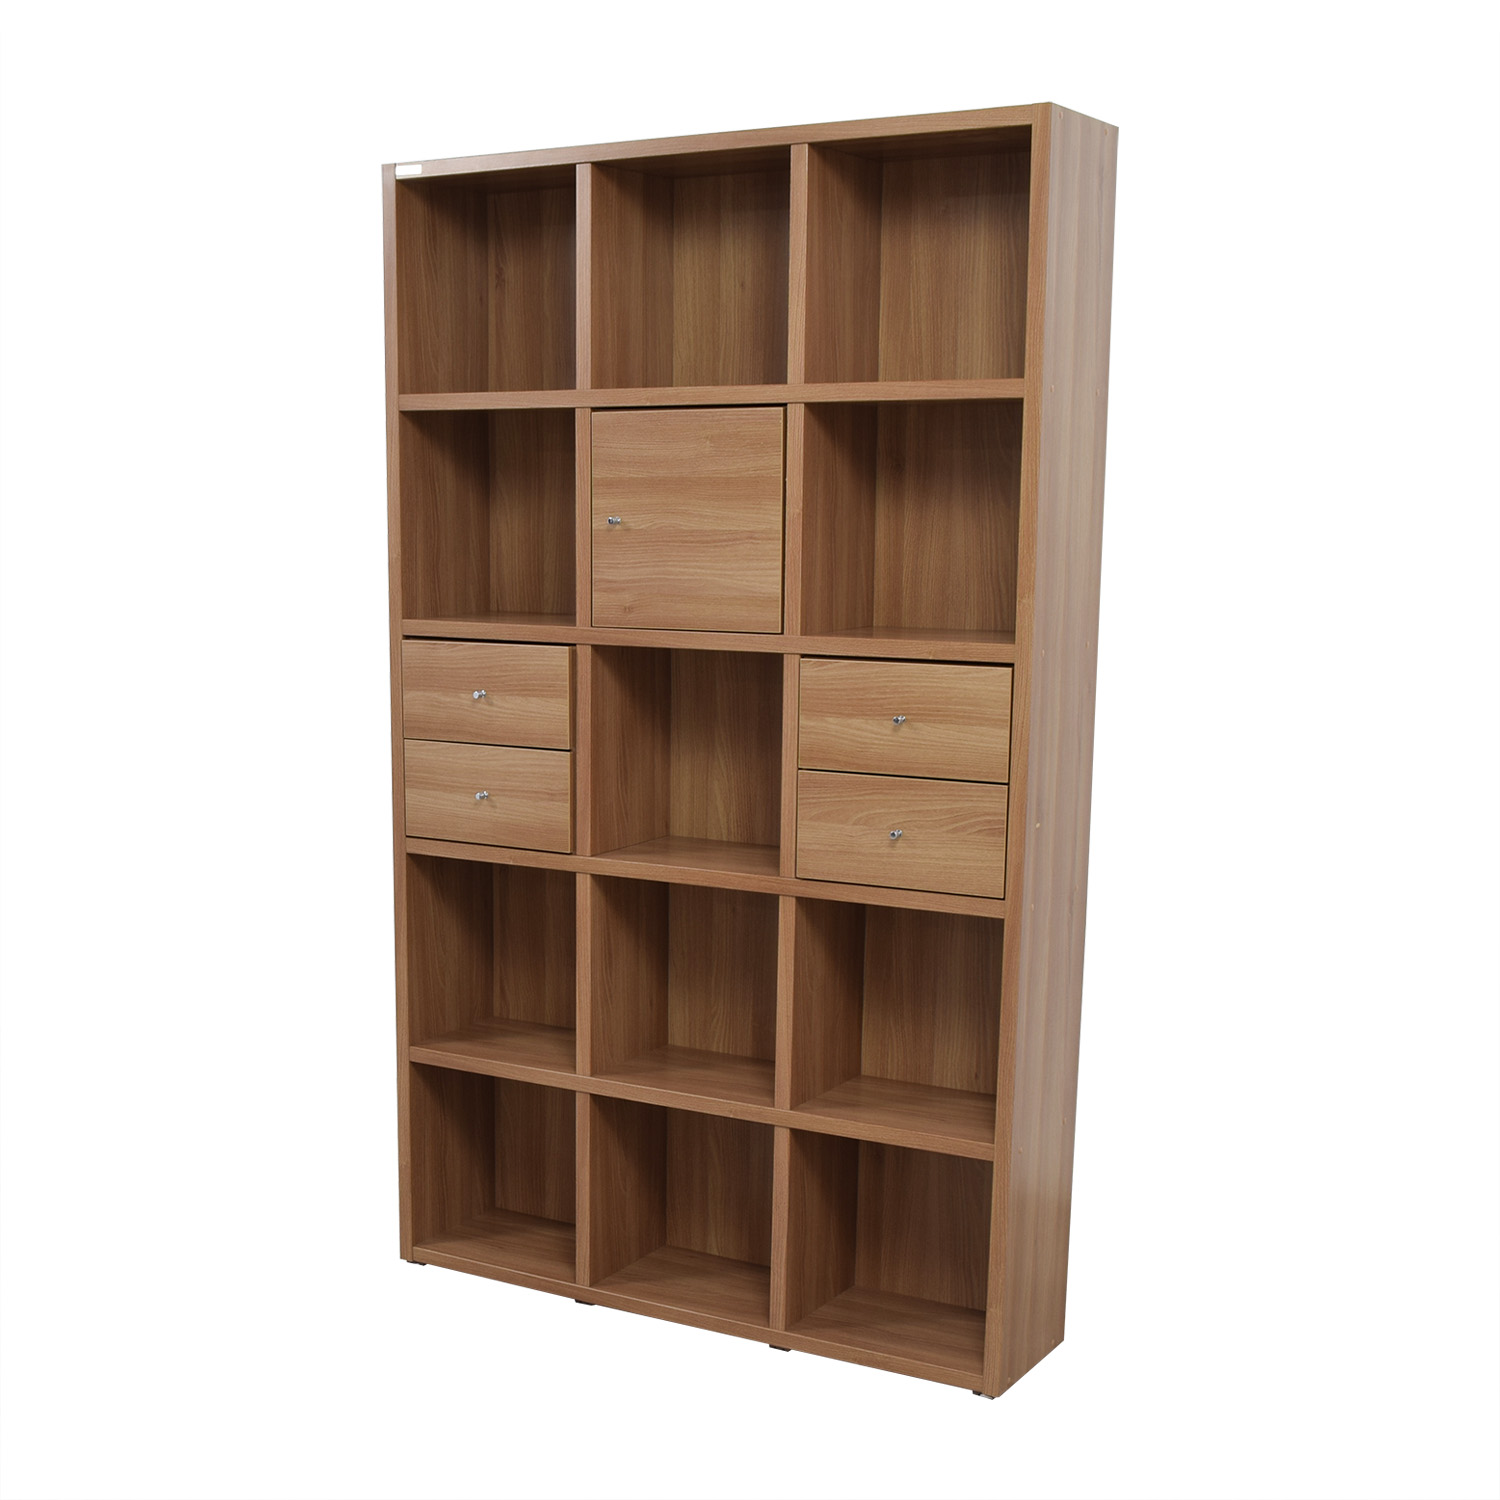 Hansaem Hansaem Natural Wood Bookshelf with Drawers and Storage price